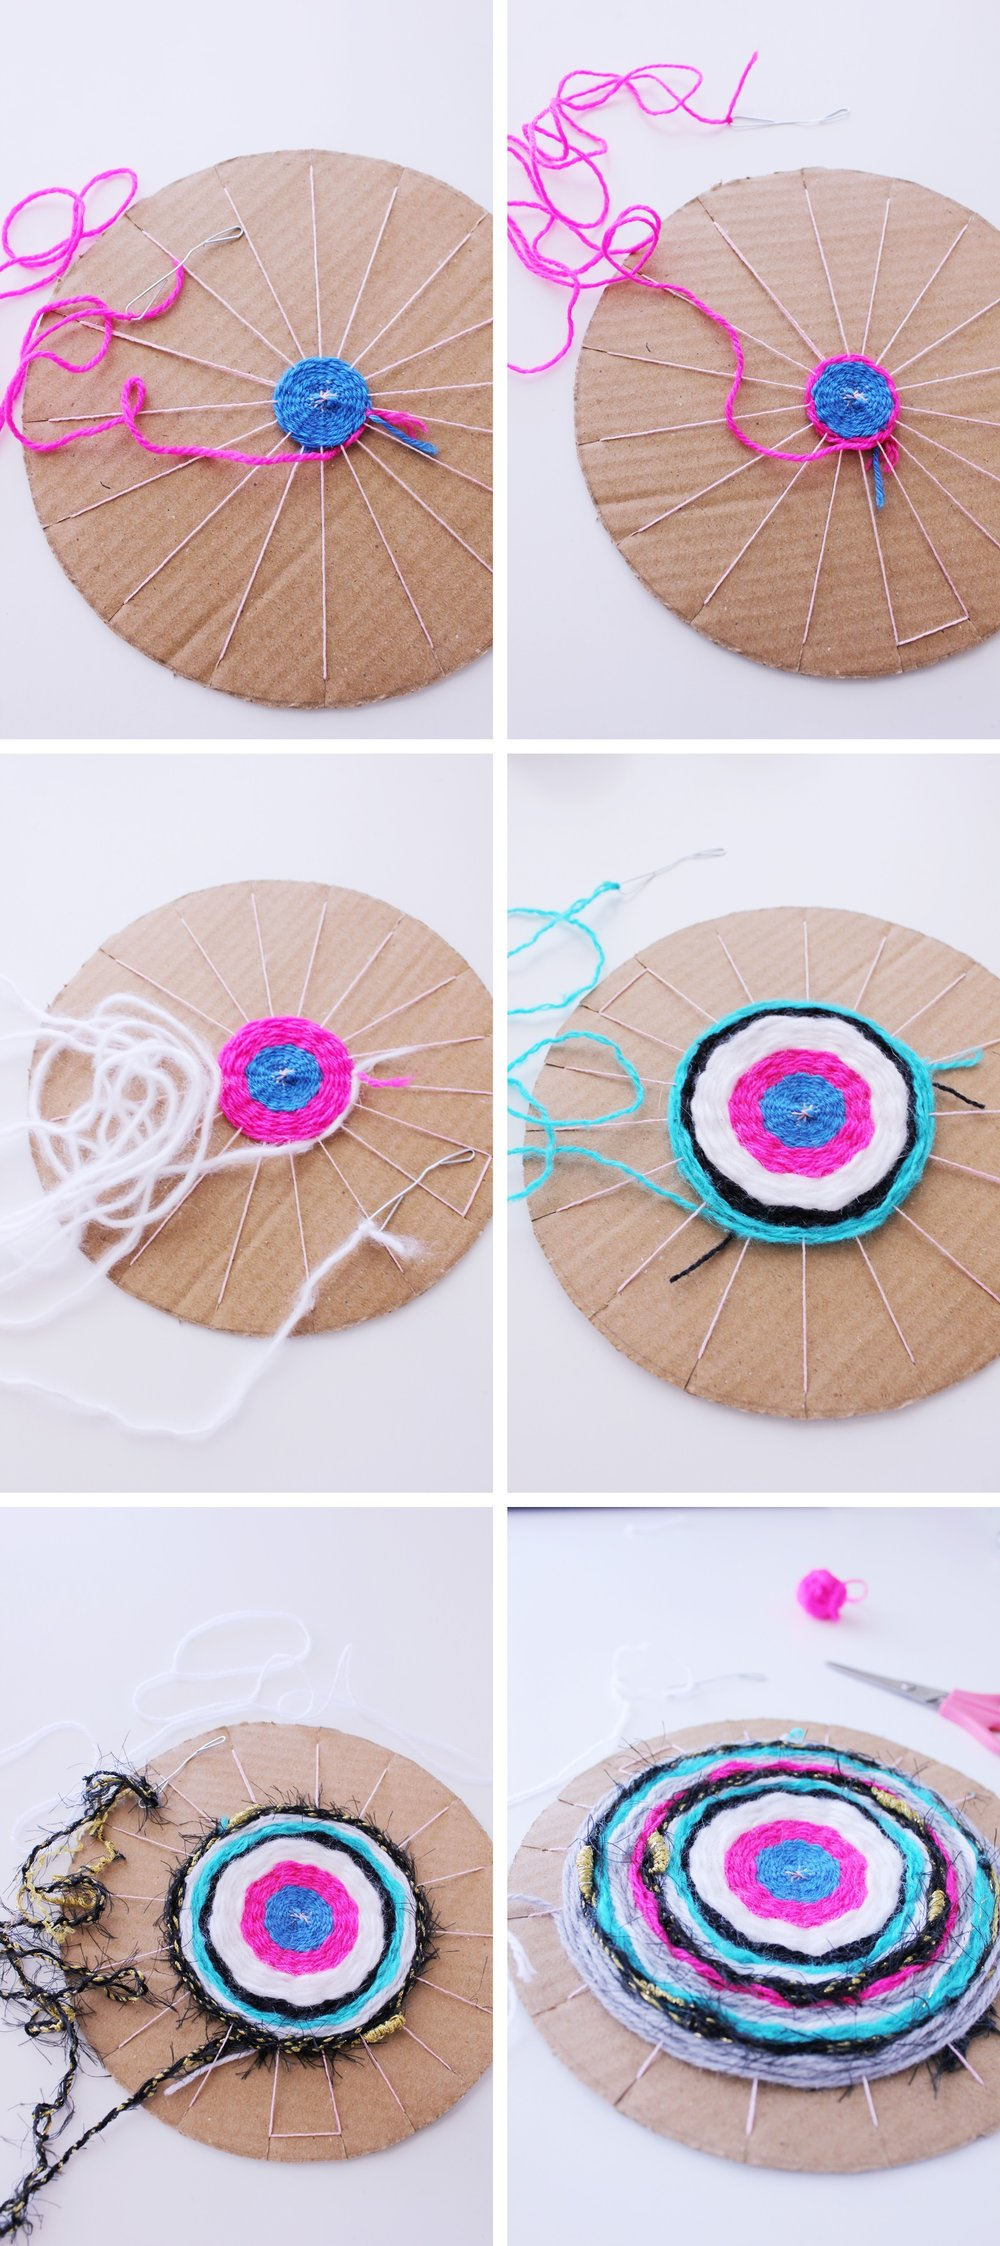 Making a round weaving that can be used as a coaster or beautiful table decoration. Full tutorial!